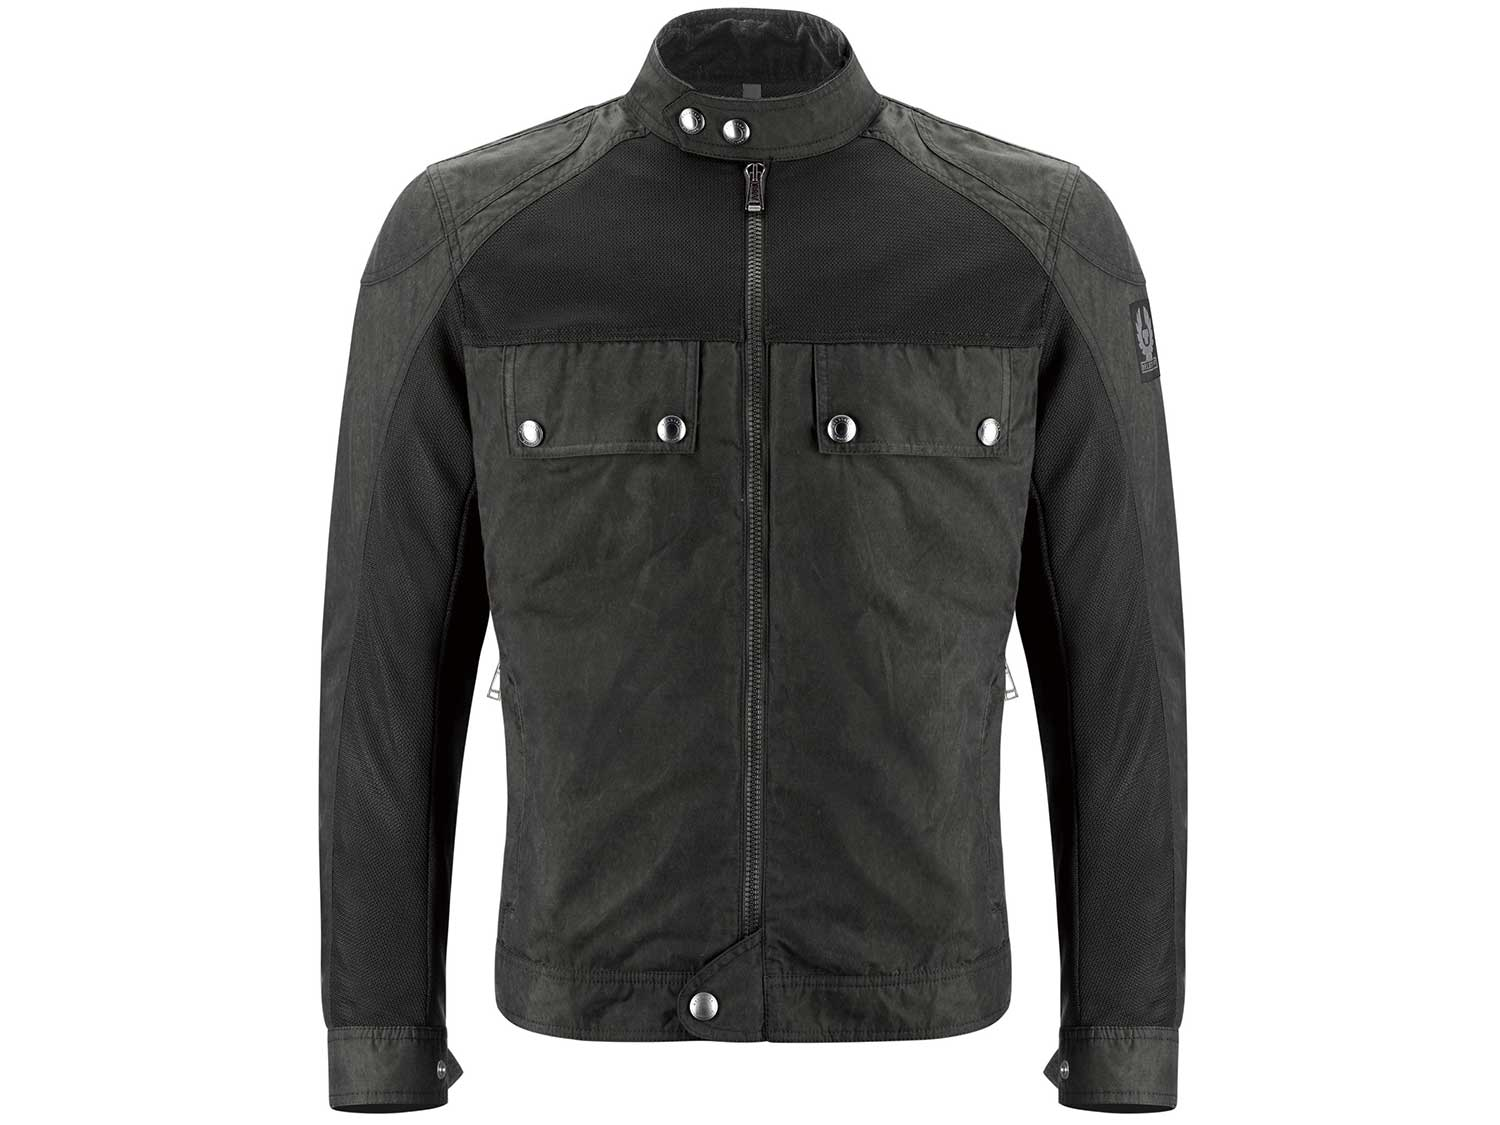 a76294c6ec4 7 Of Our Favorite Summer Riding Jackets | Motorcycle Cruiser